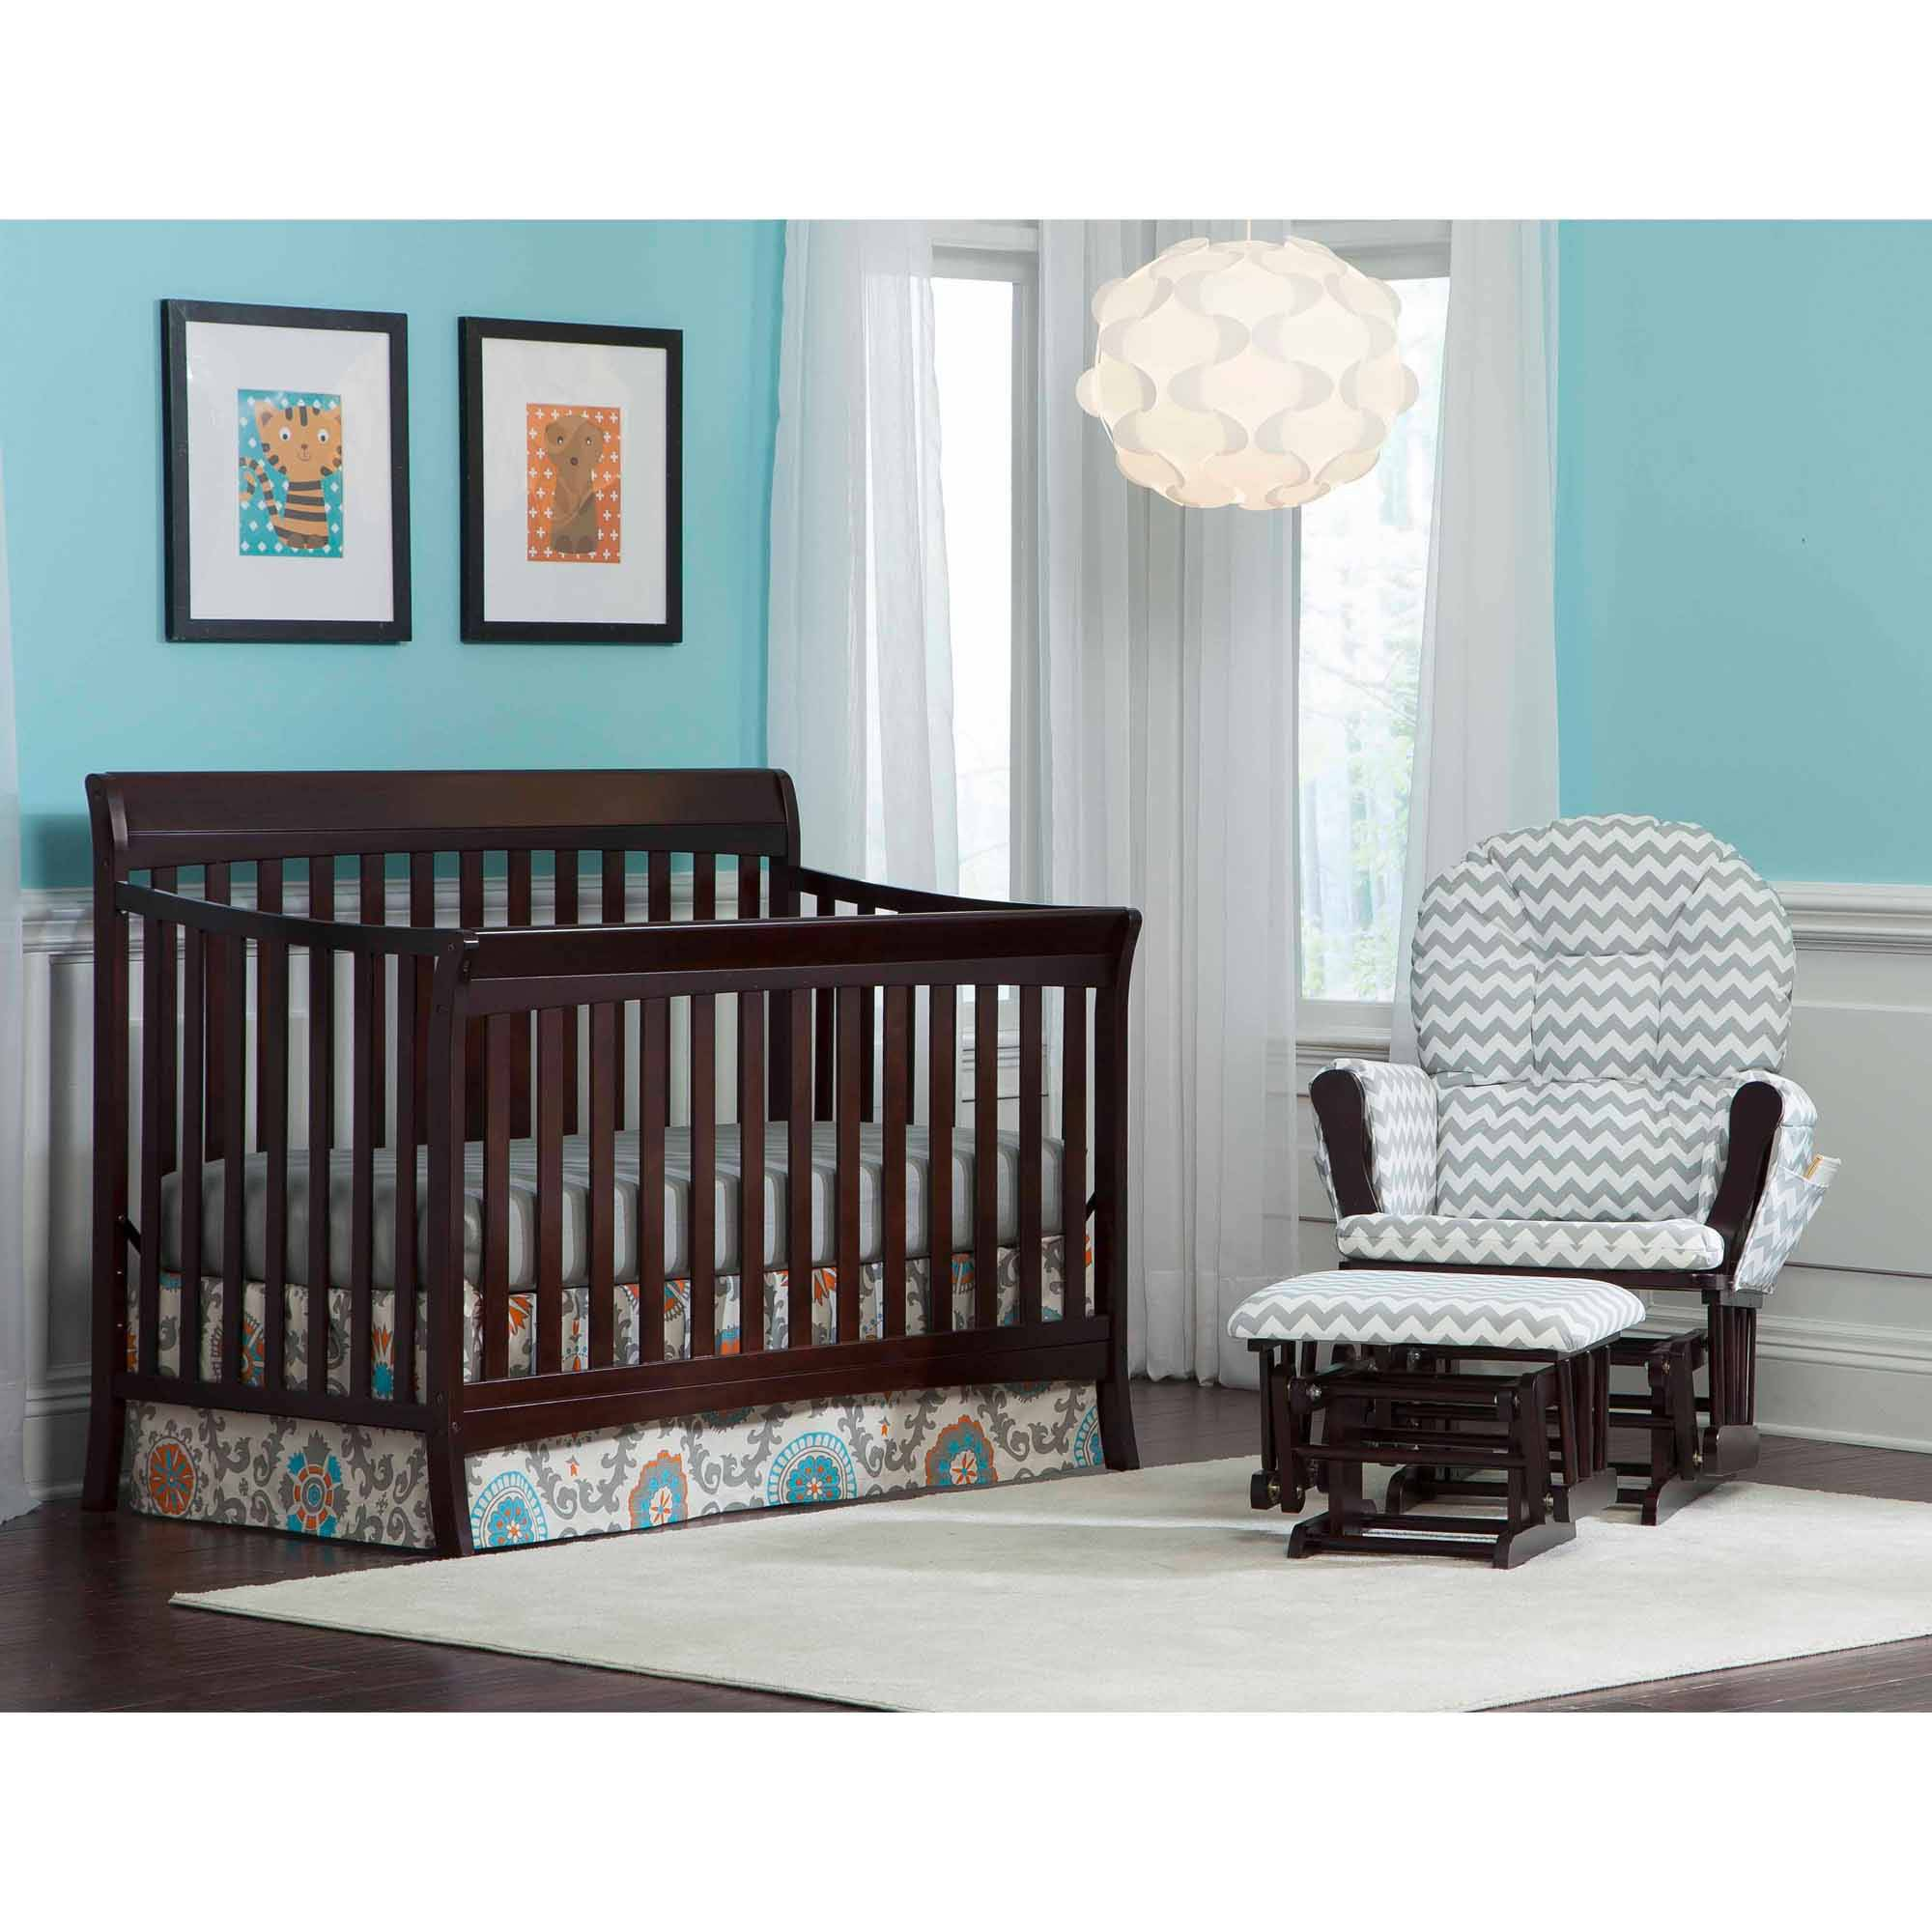 Storkcraft Avalon 4-in-1 Convertible Crib, Multiple Colors